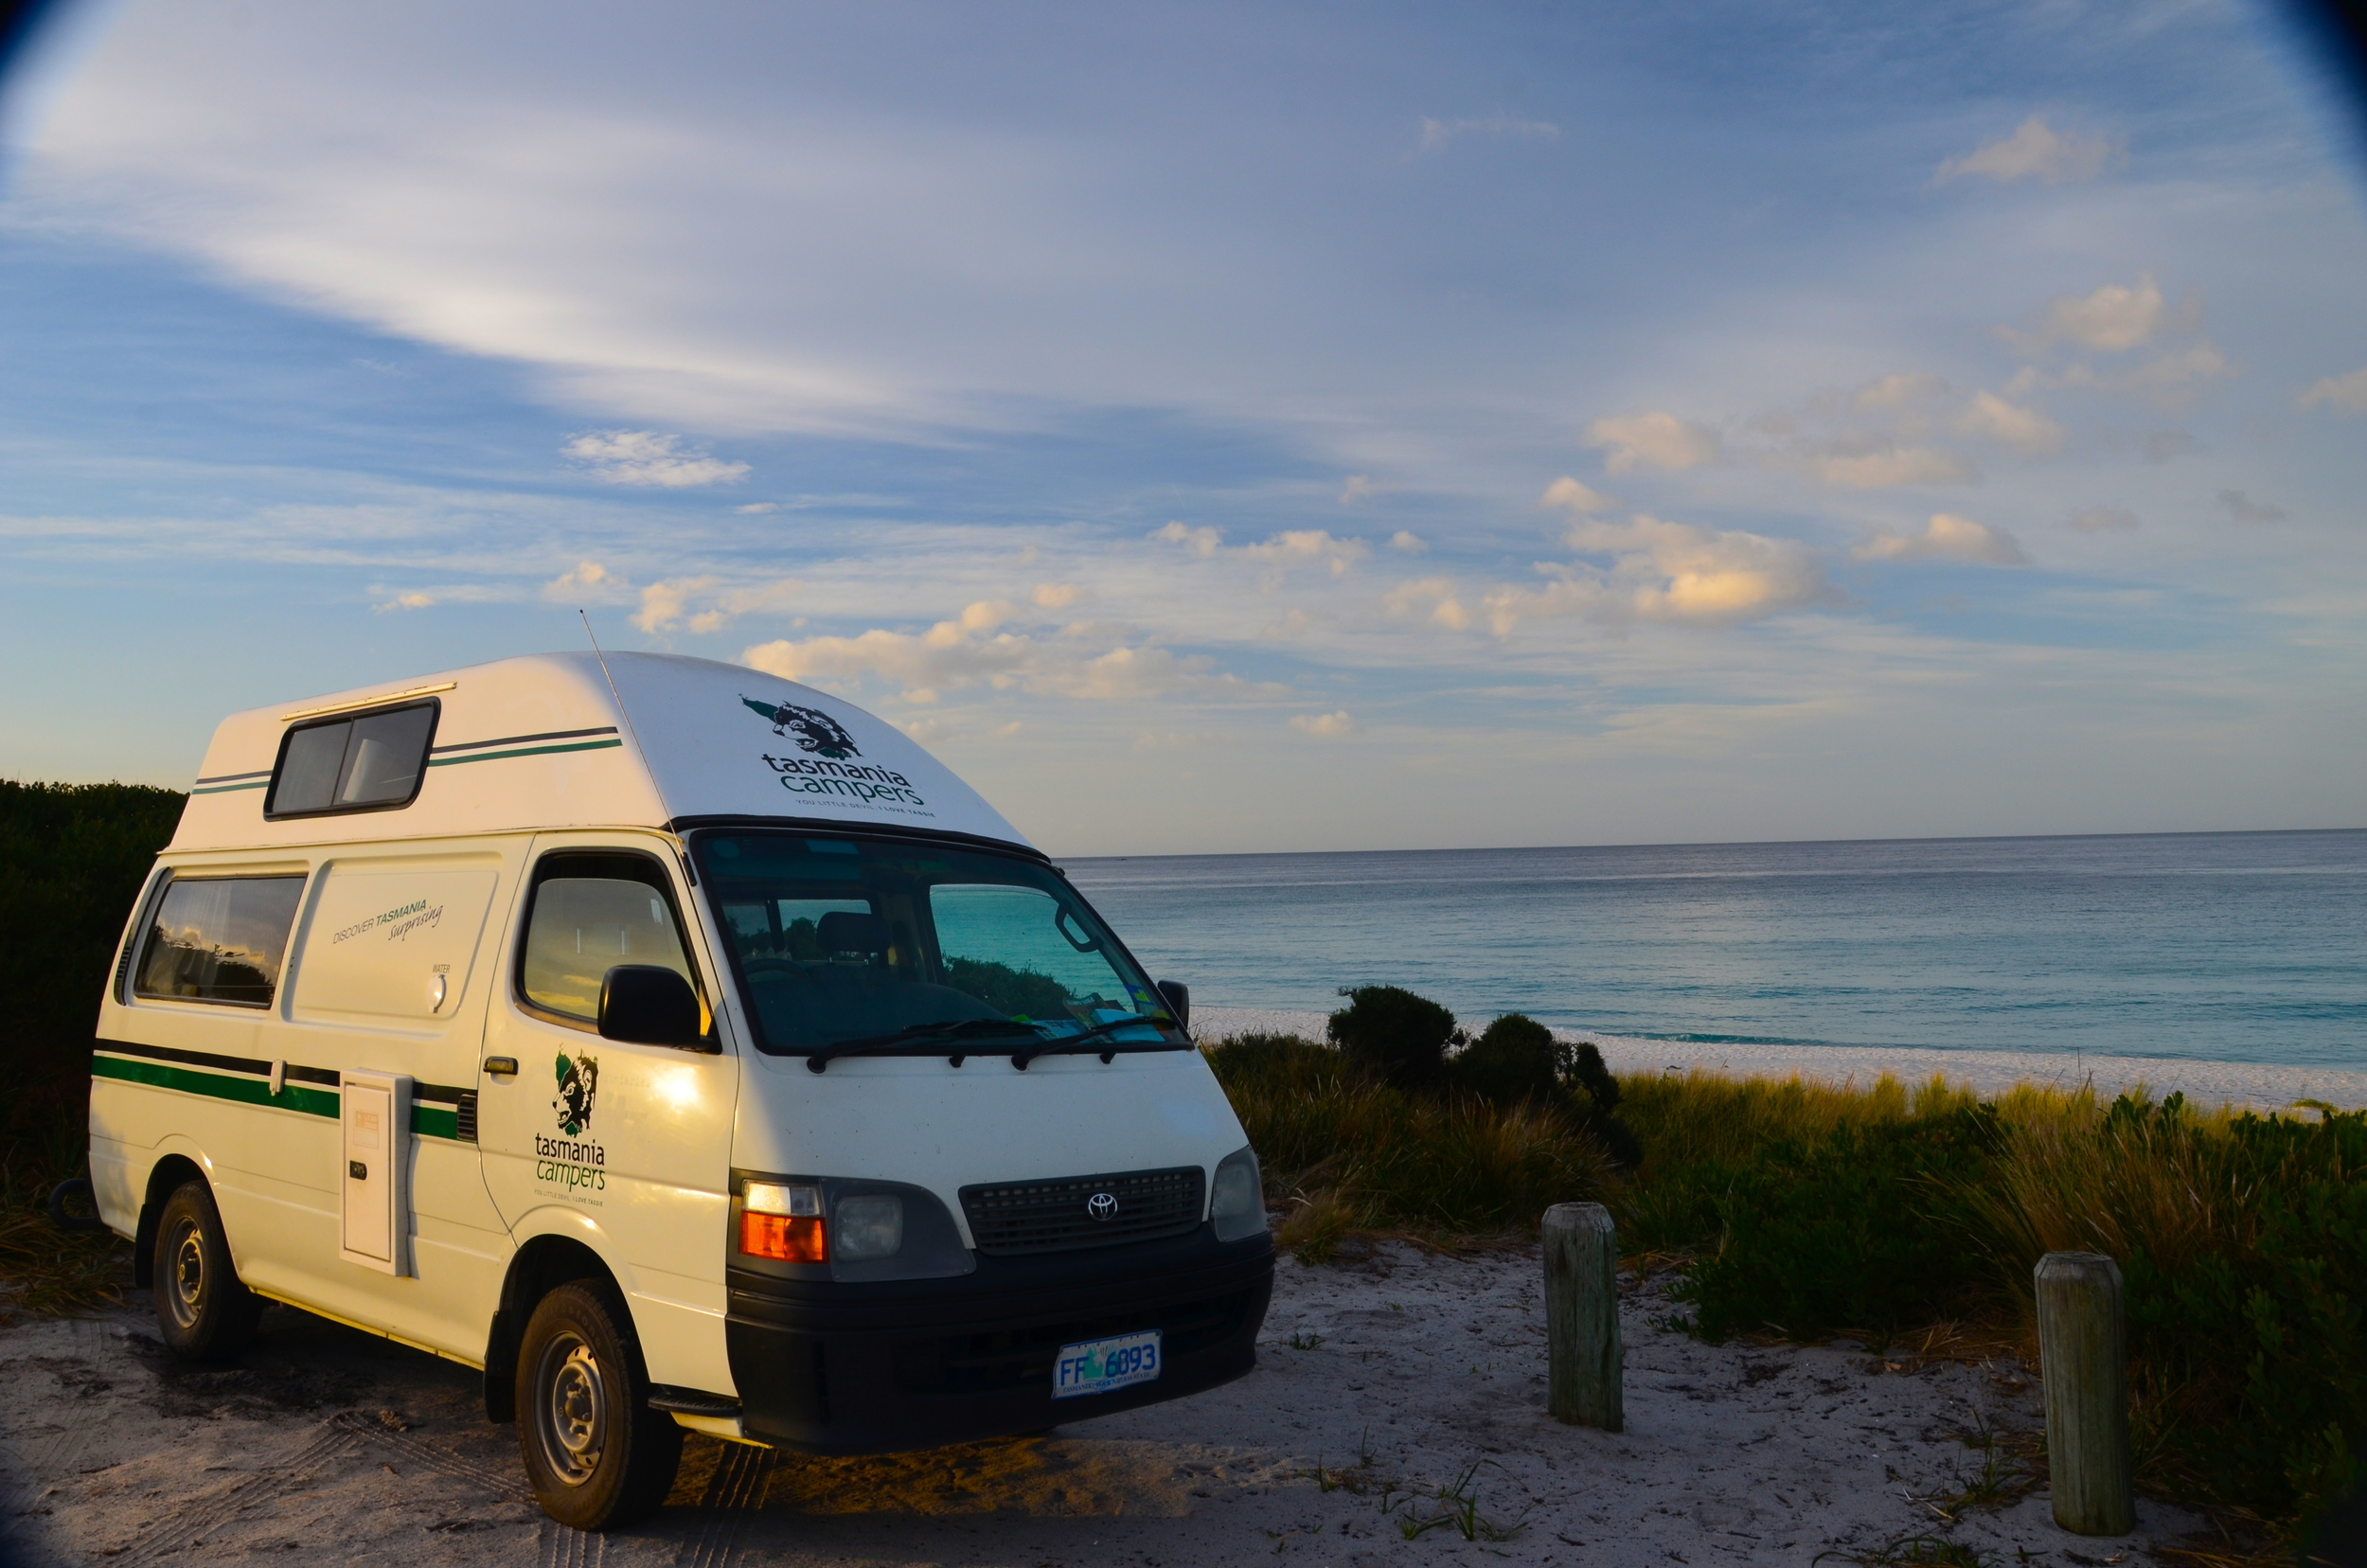 Our free beach camp for the night!....No complaining here!